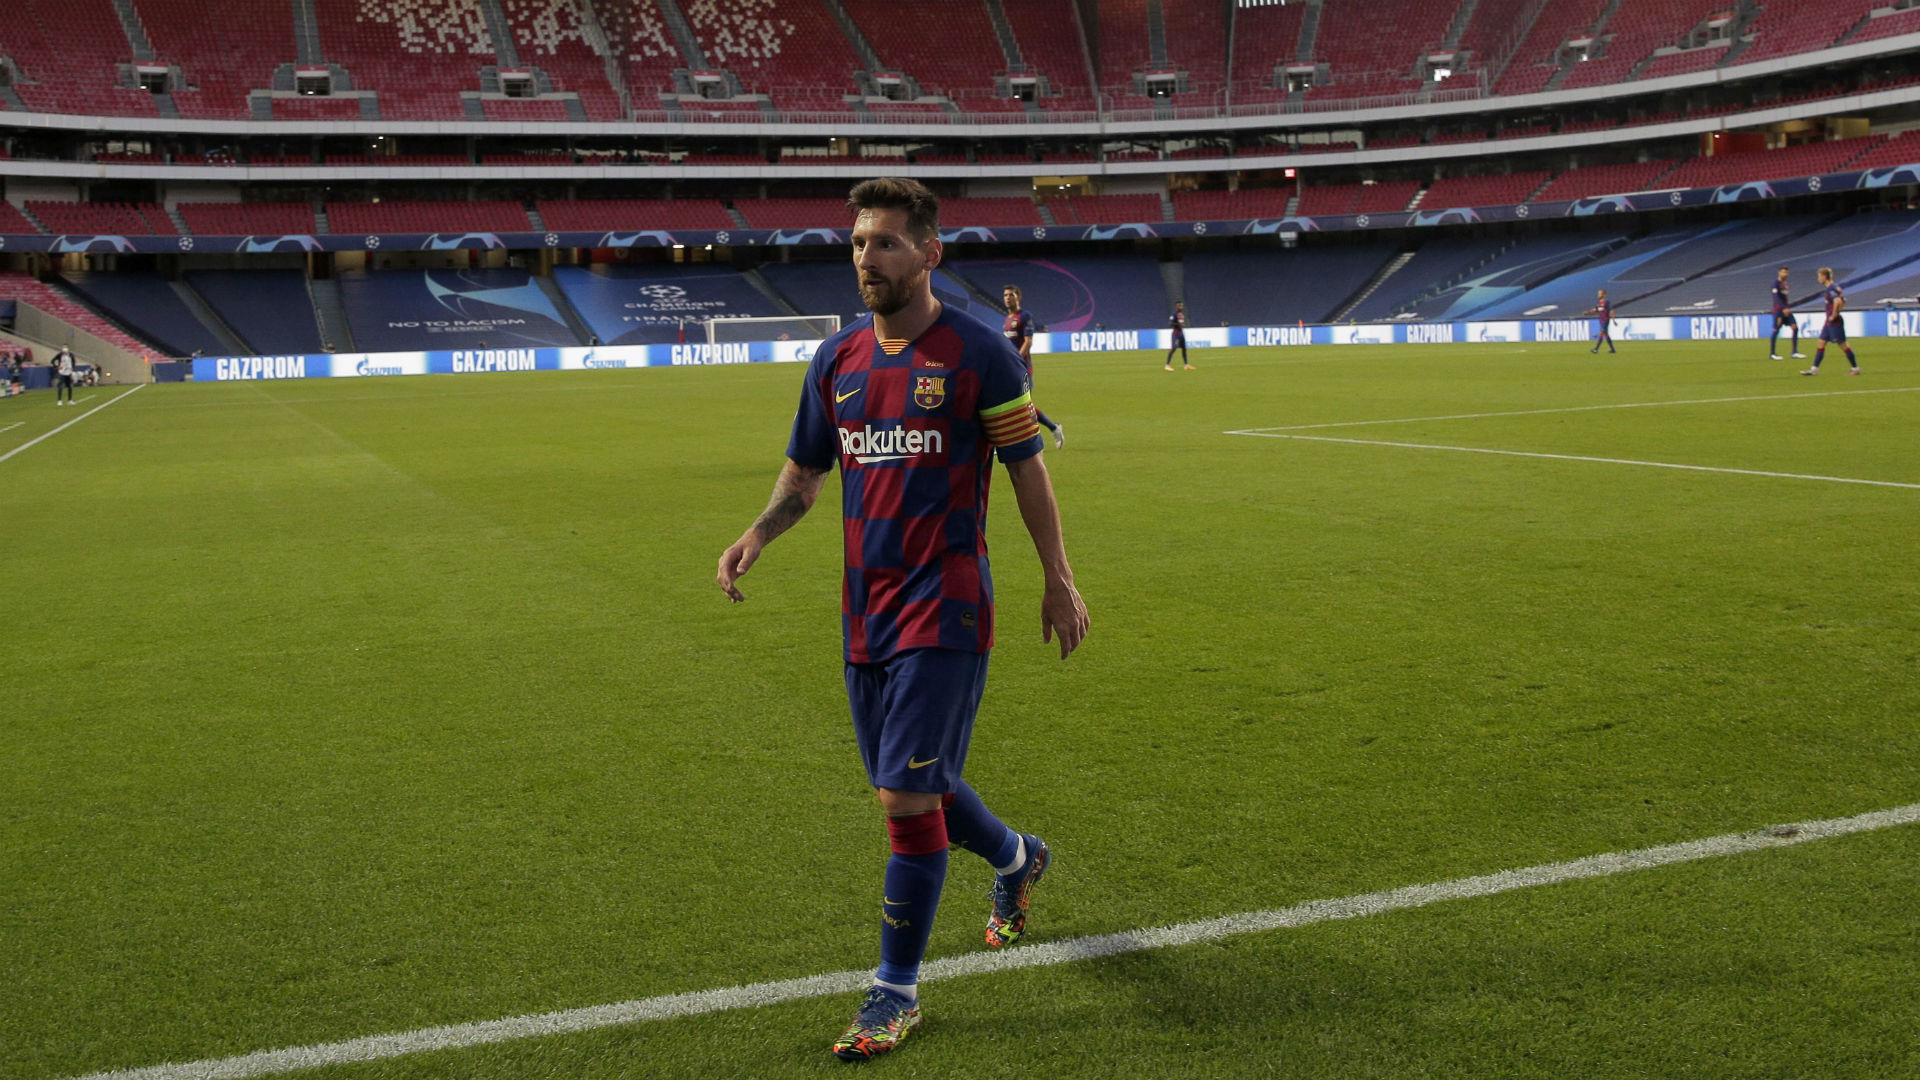 It's fantastic he will be part of Barca's season – Koeman delighted to have Messi